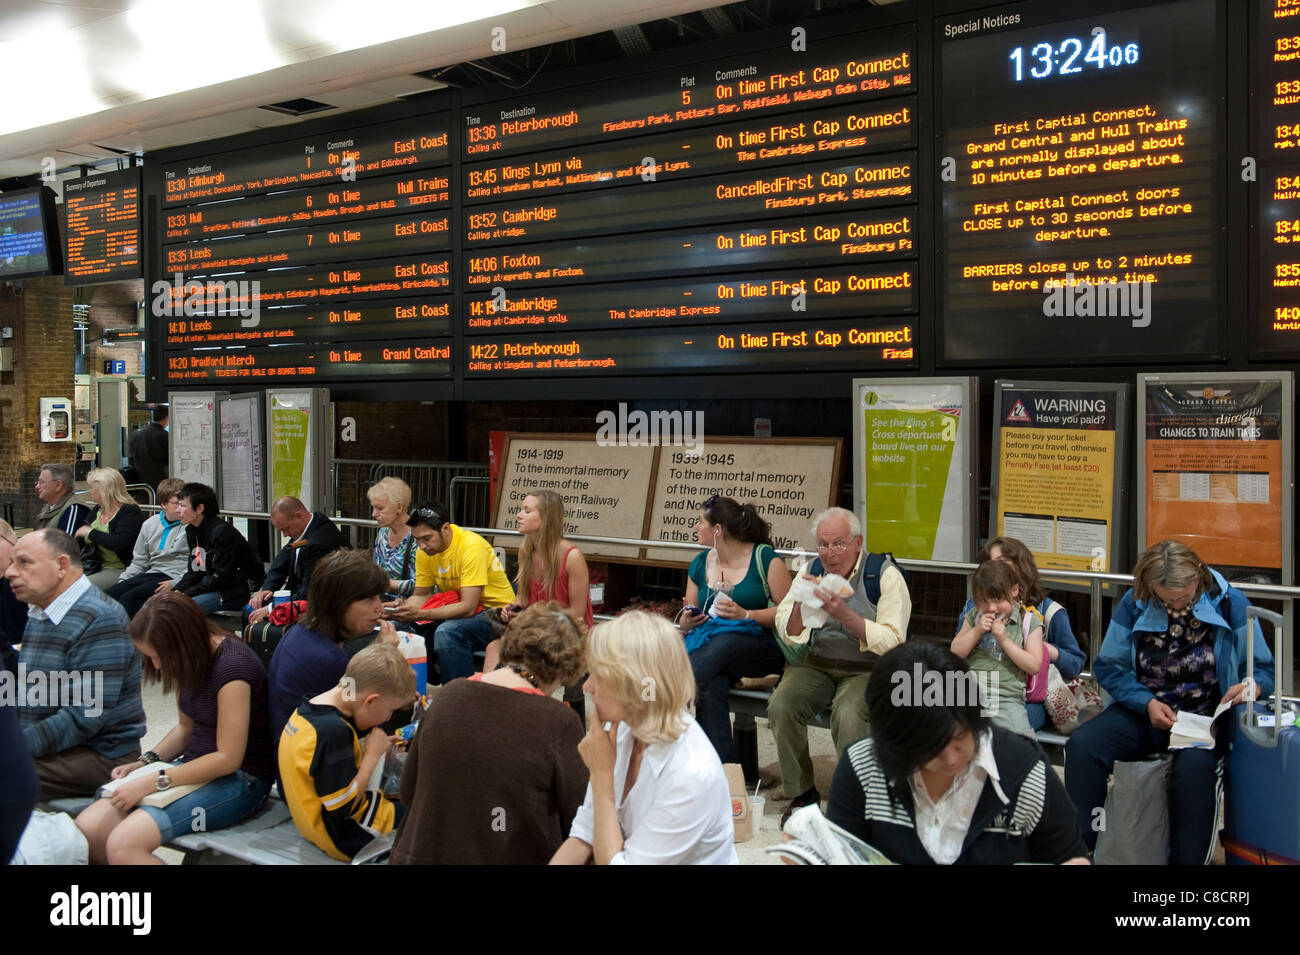 Passengers waiting beneath a passenger information board at Kings Cross railway Station in London. - Stock Image